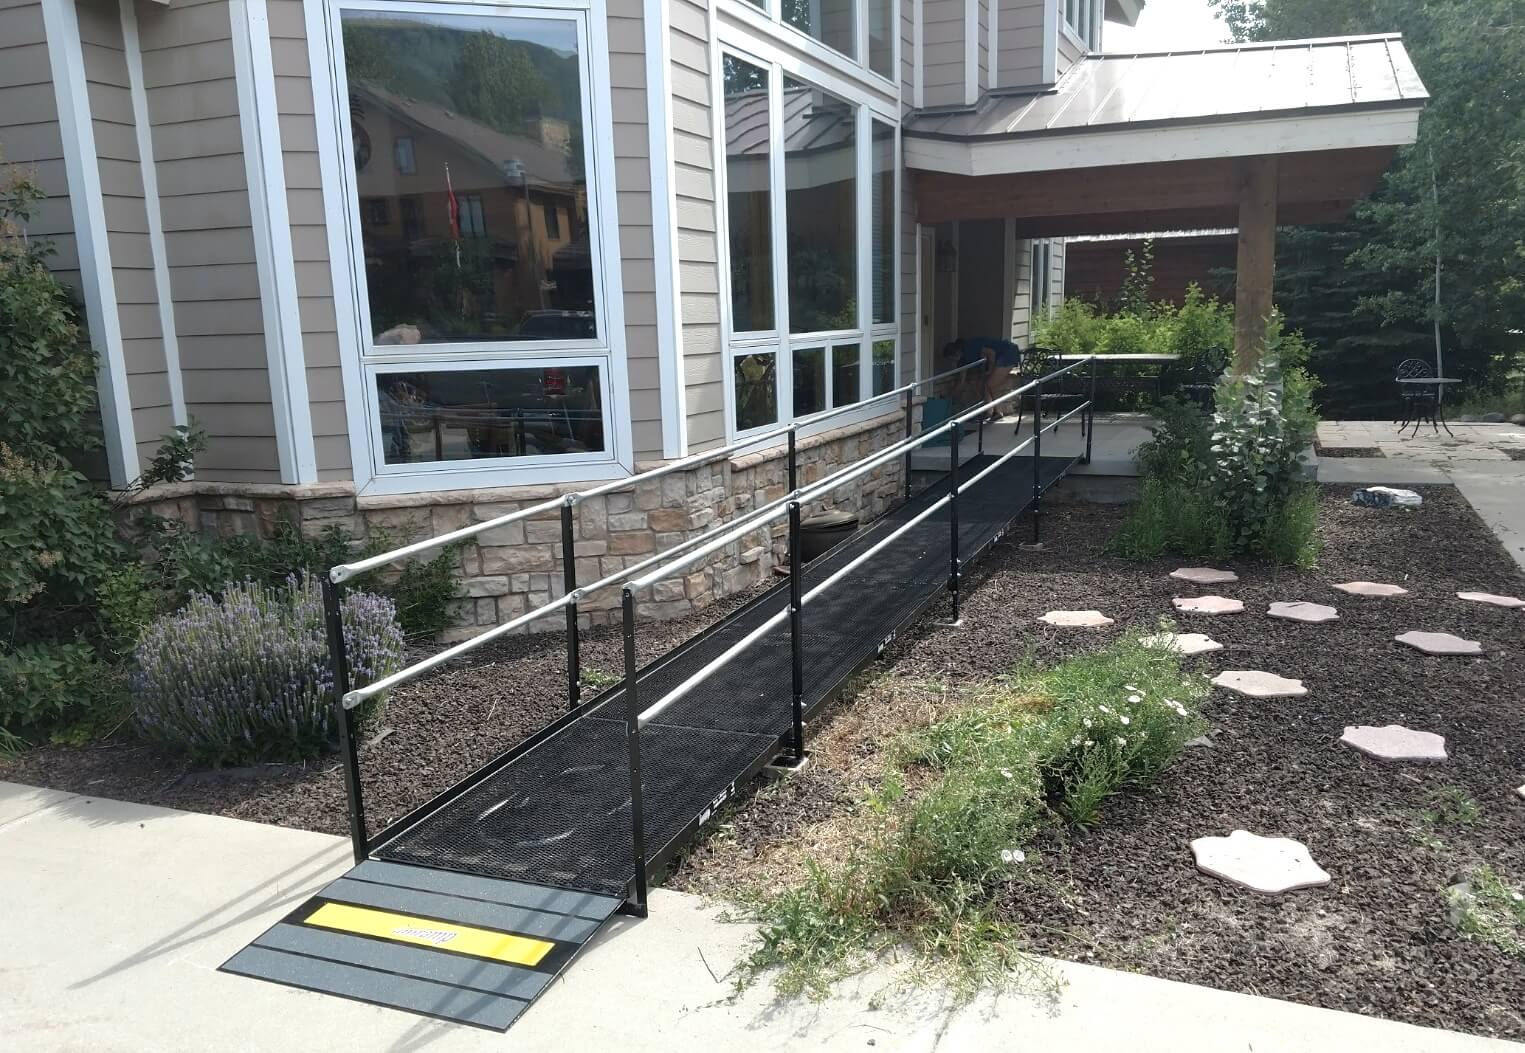 The Amramp Utah team installed this ramp at a home in Park City, UT.